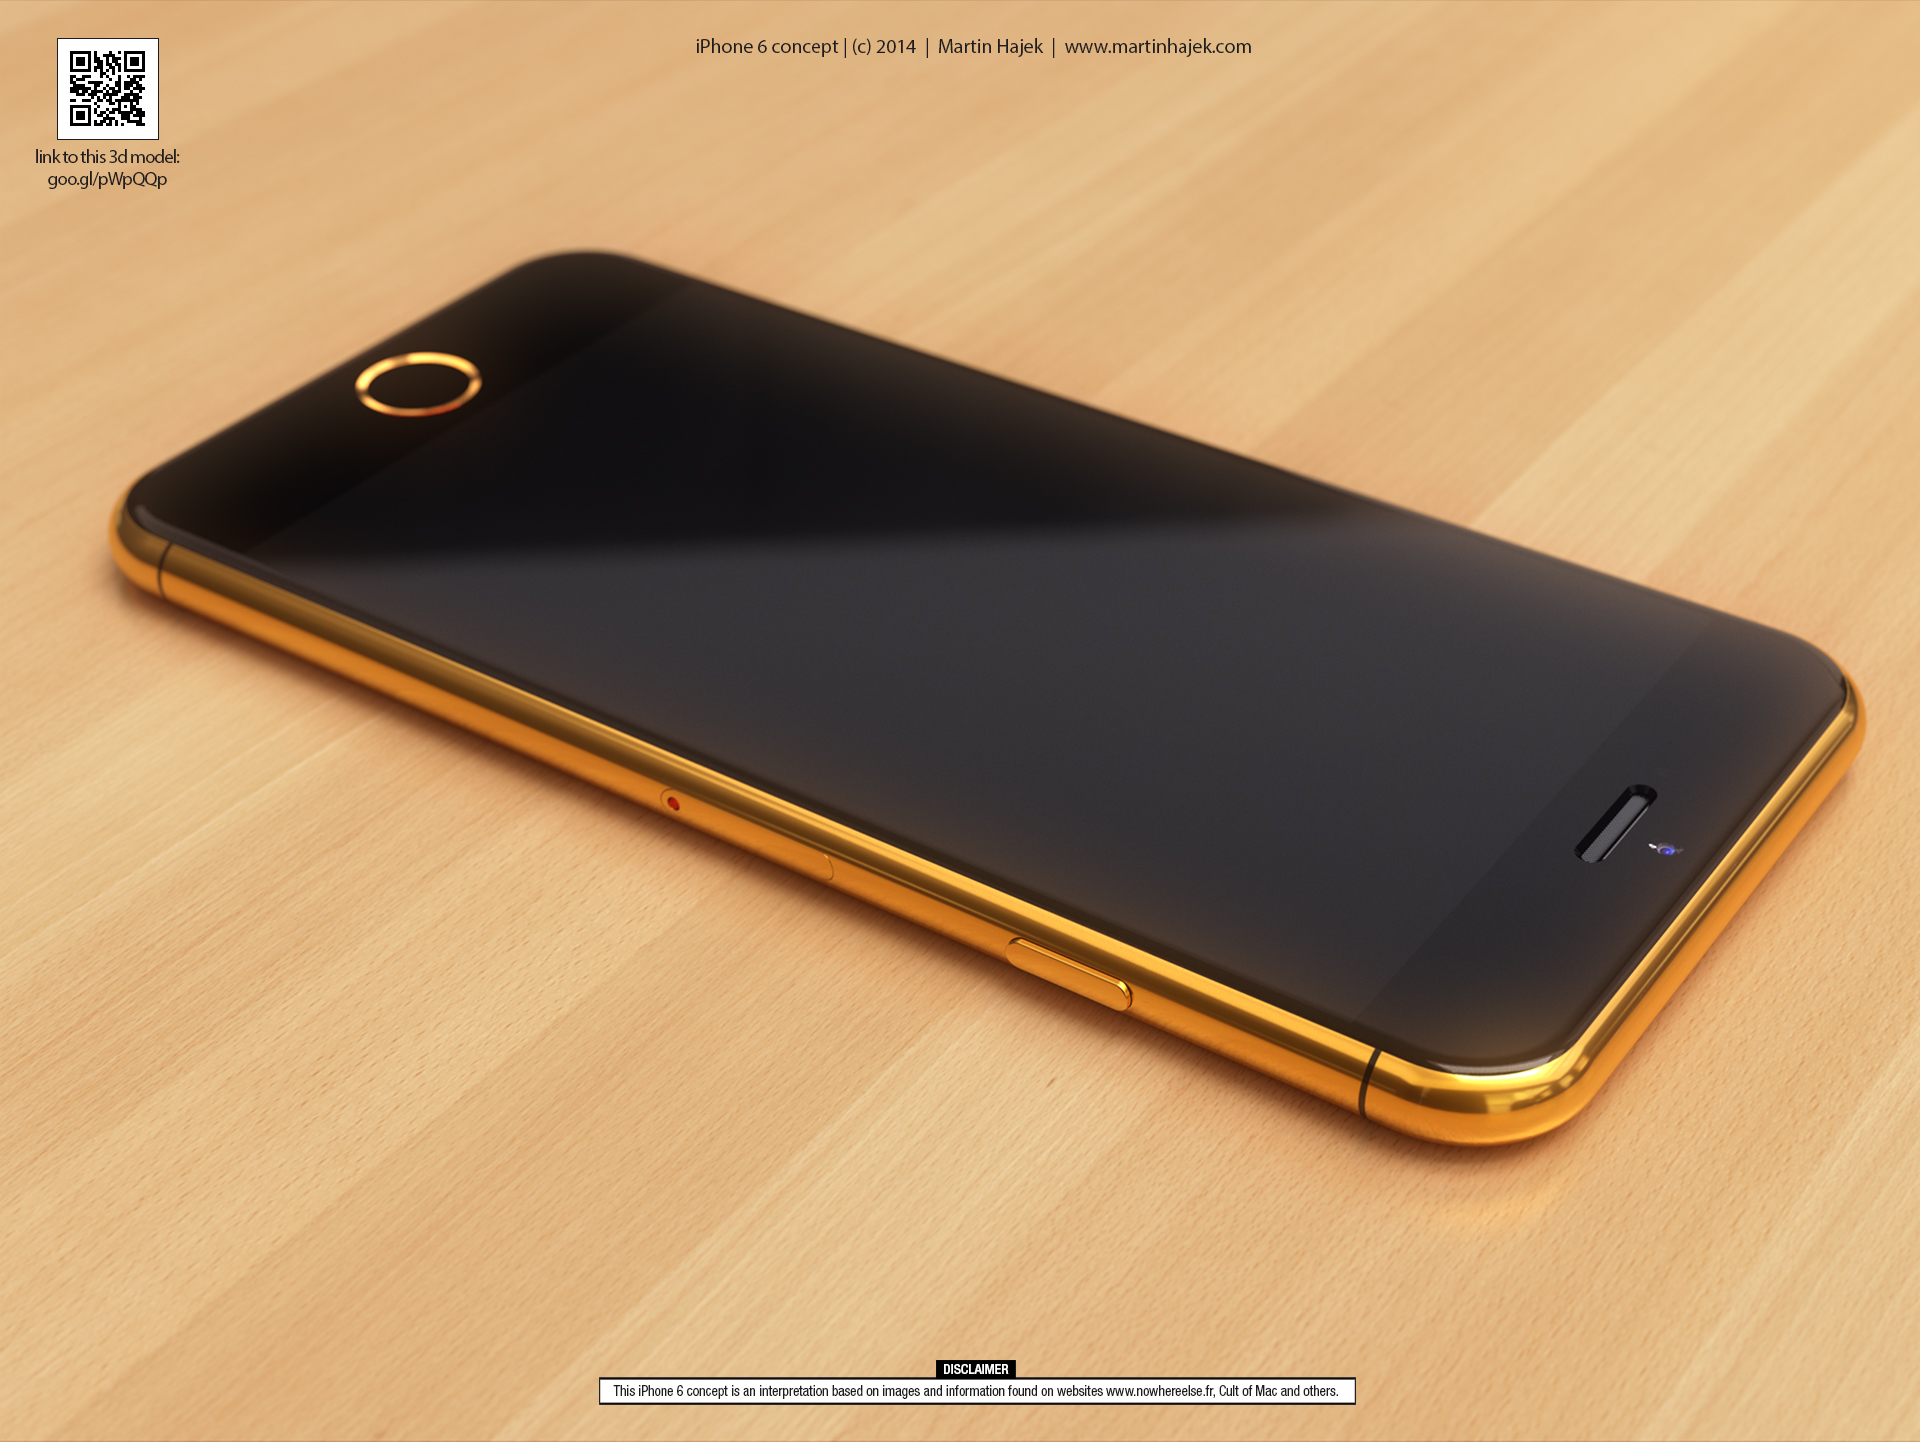 Luxury-iPhone-6-concept-design (5)